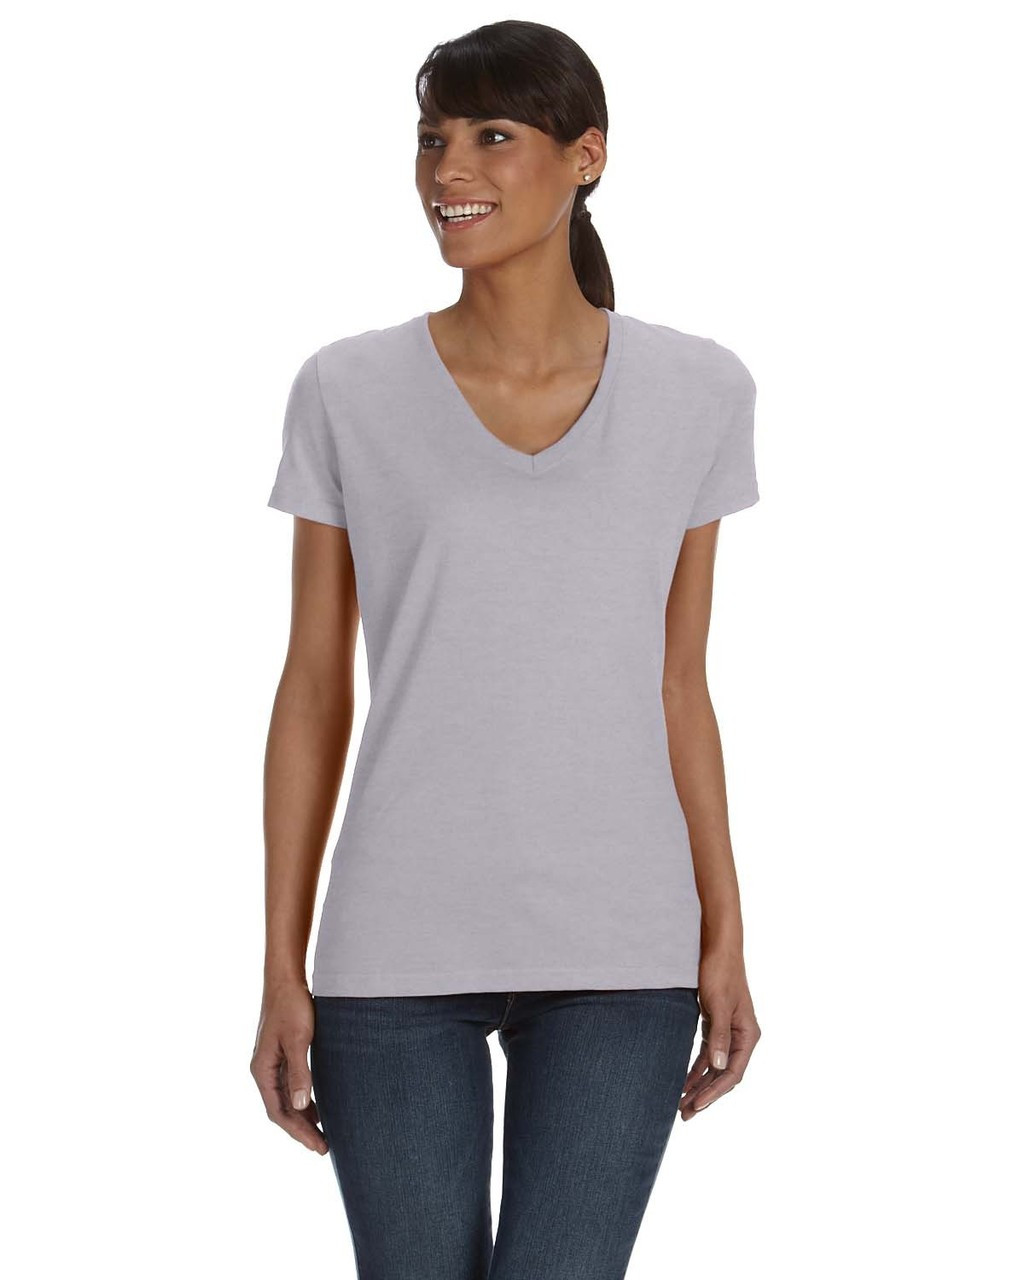 Athletic Heather - L39VR Fruit of the Loom Ladies' 100% Heavy Cotton HD® V-Neck T-Shirt | Blankclothing.ca